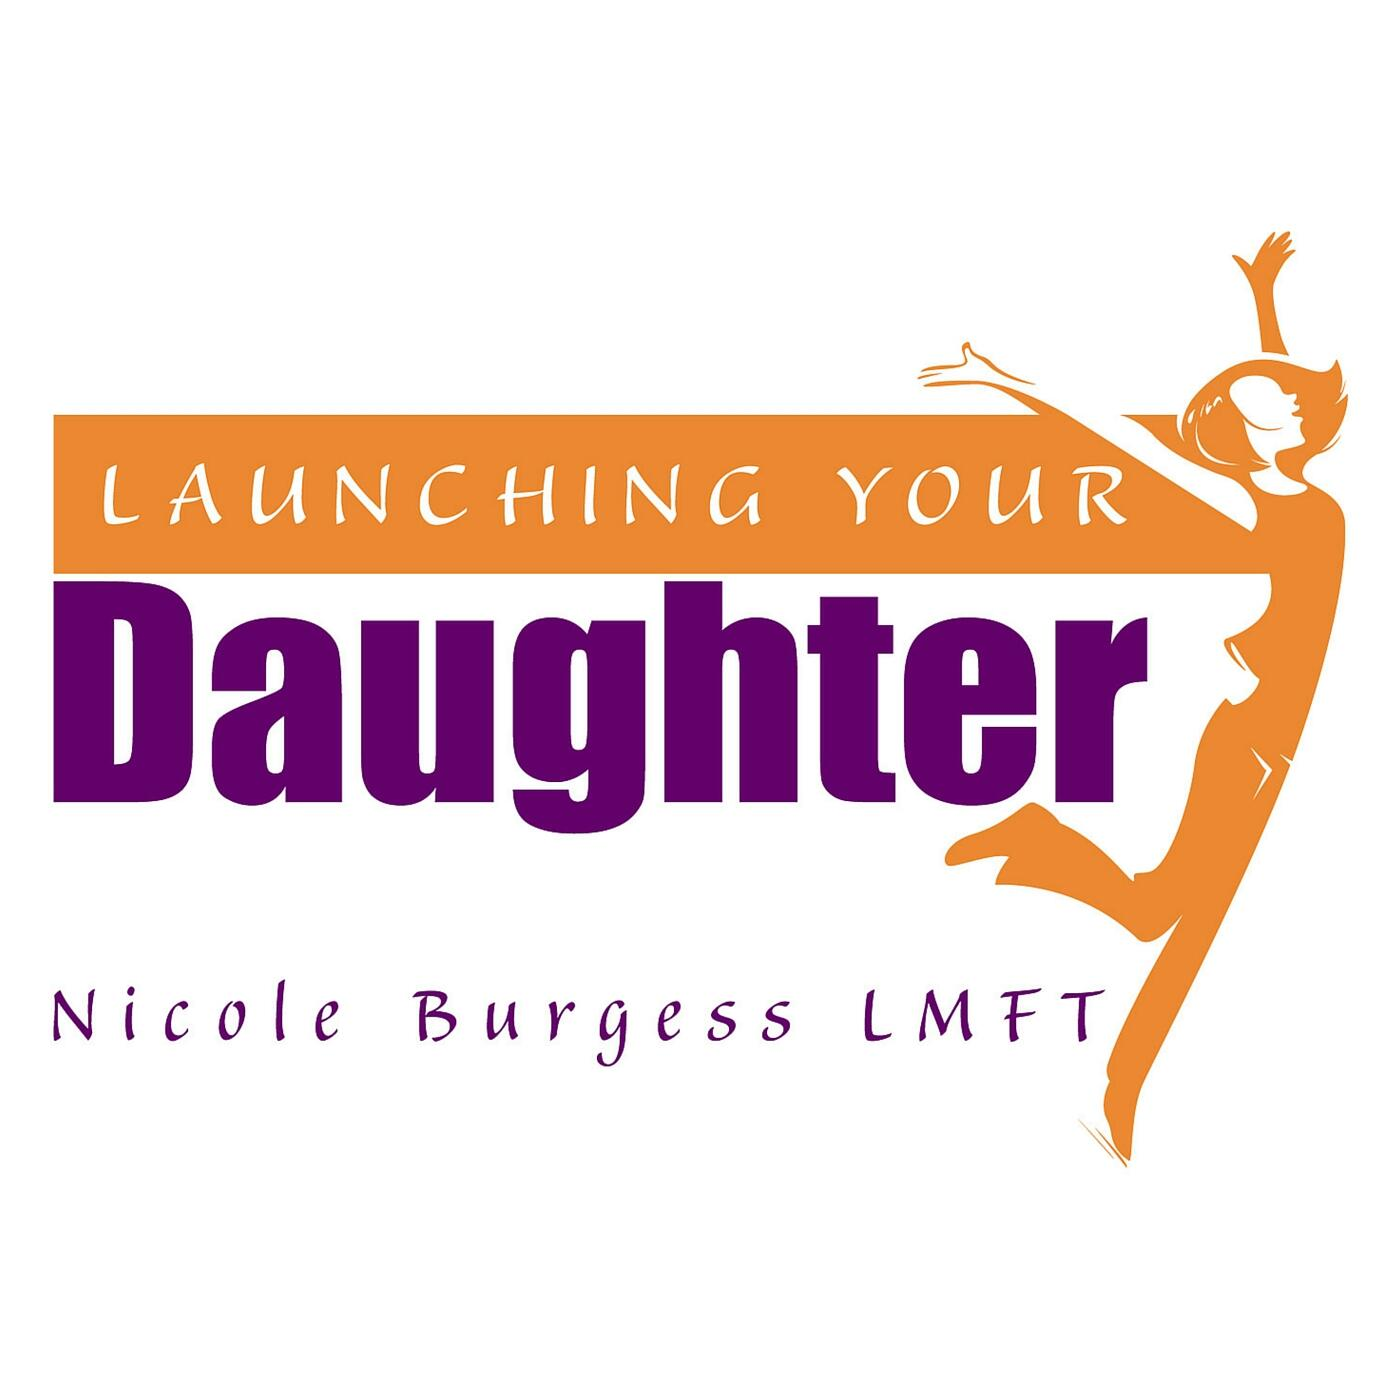 Launching Your Daughter